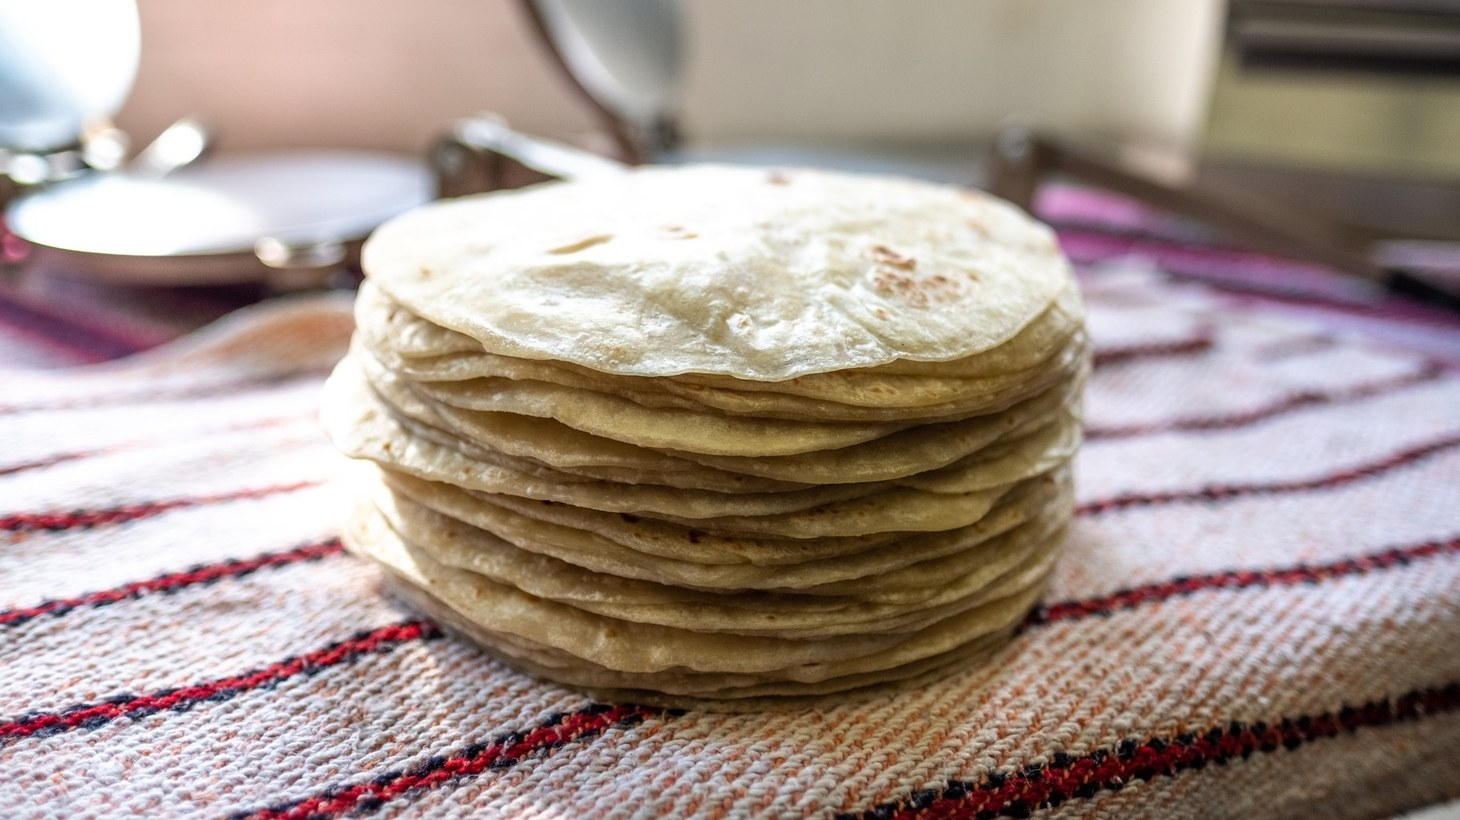 Freshly made flour tortillas from Sonoratown, last year's #TortillaTournament winner and the #1 seed this time around.